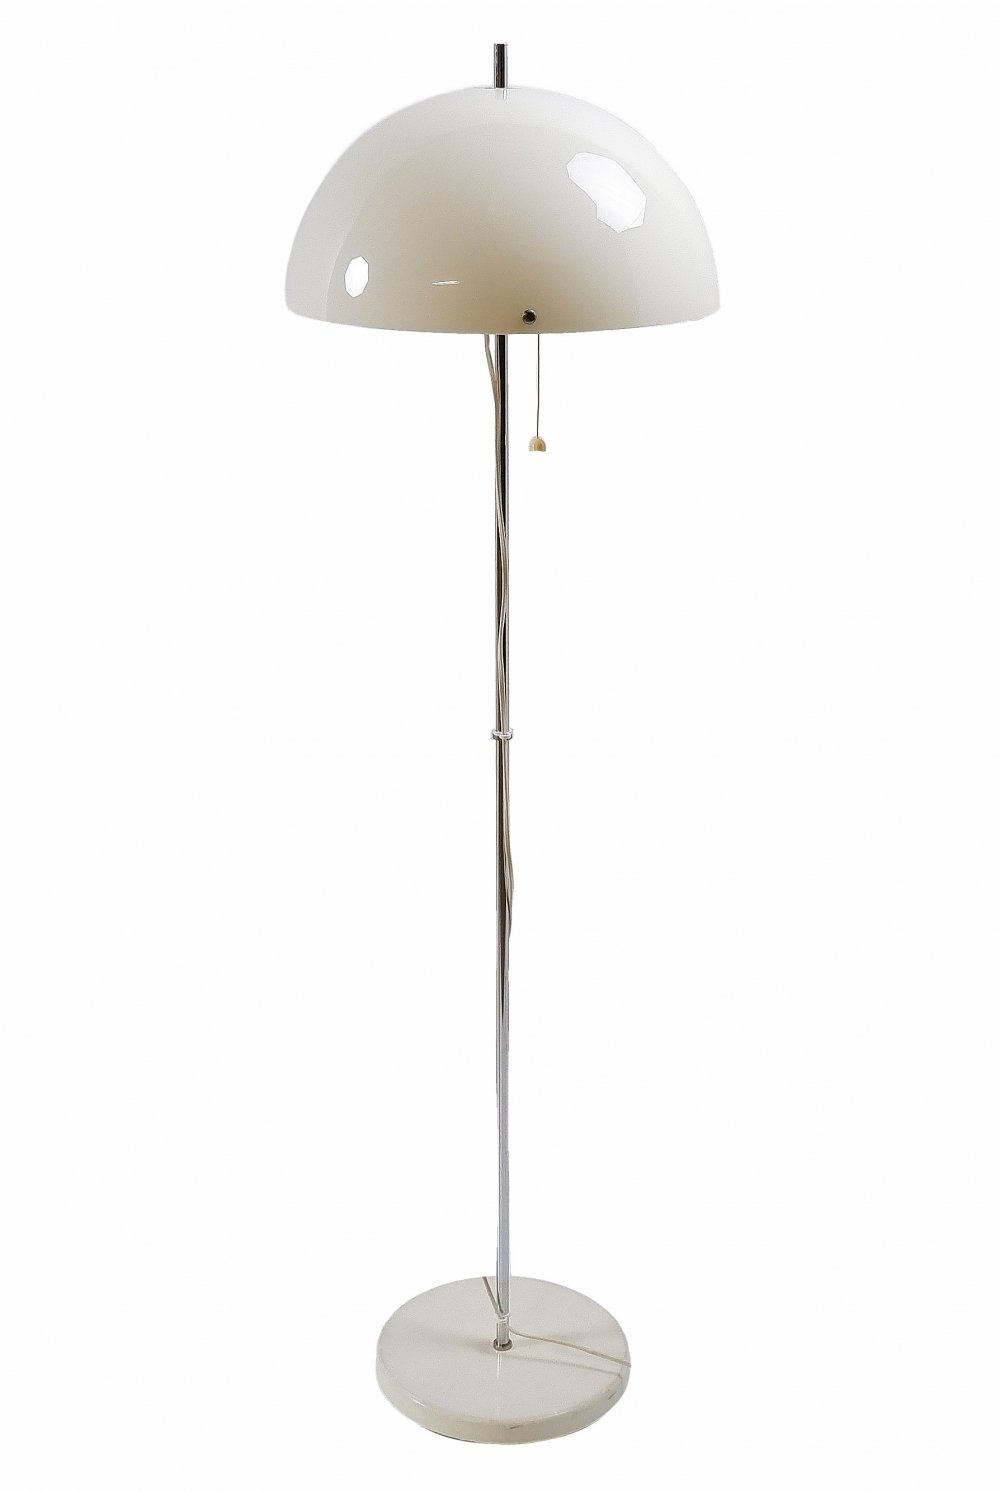 Floorlamp by Fagerhults Sweden, 1970s